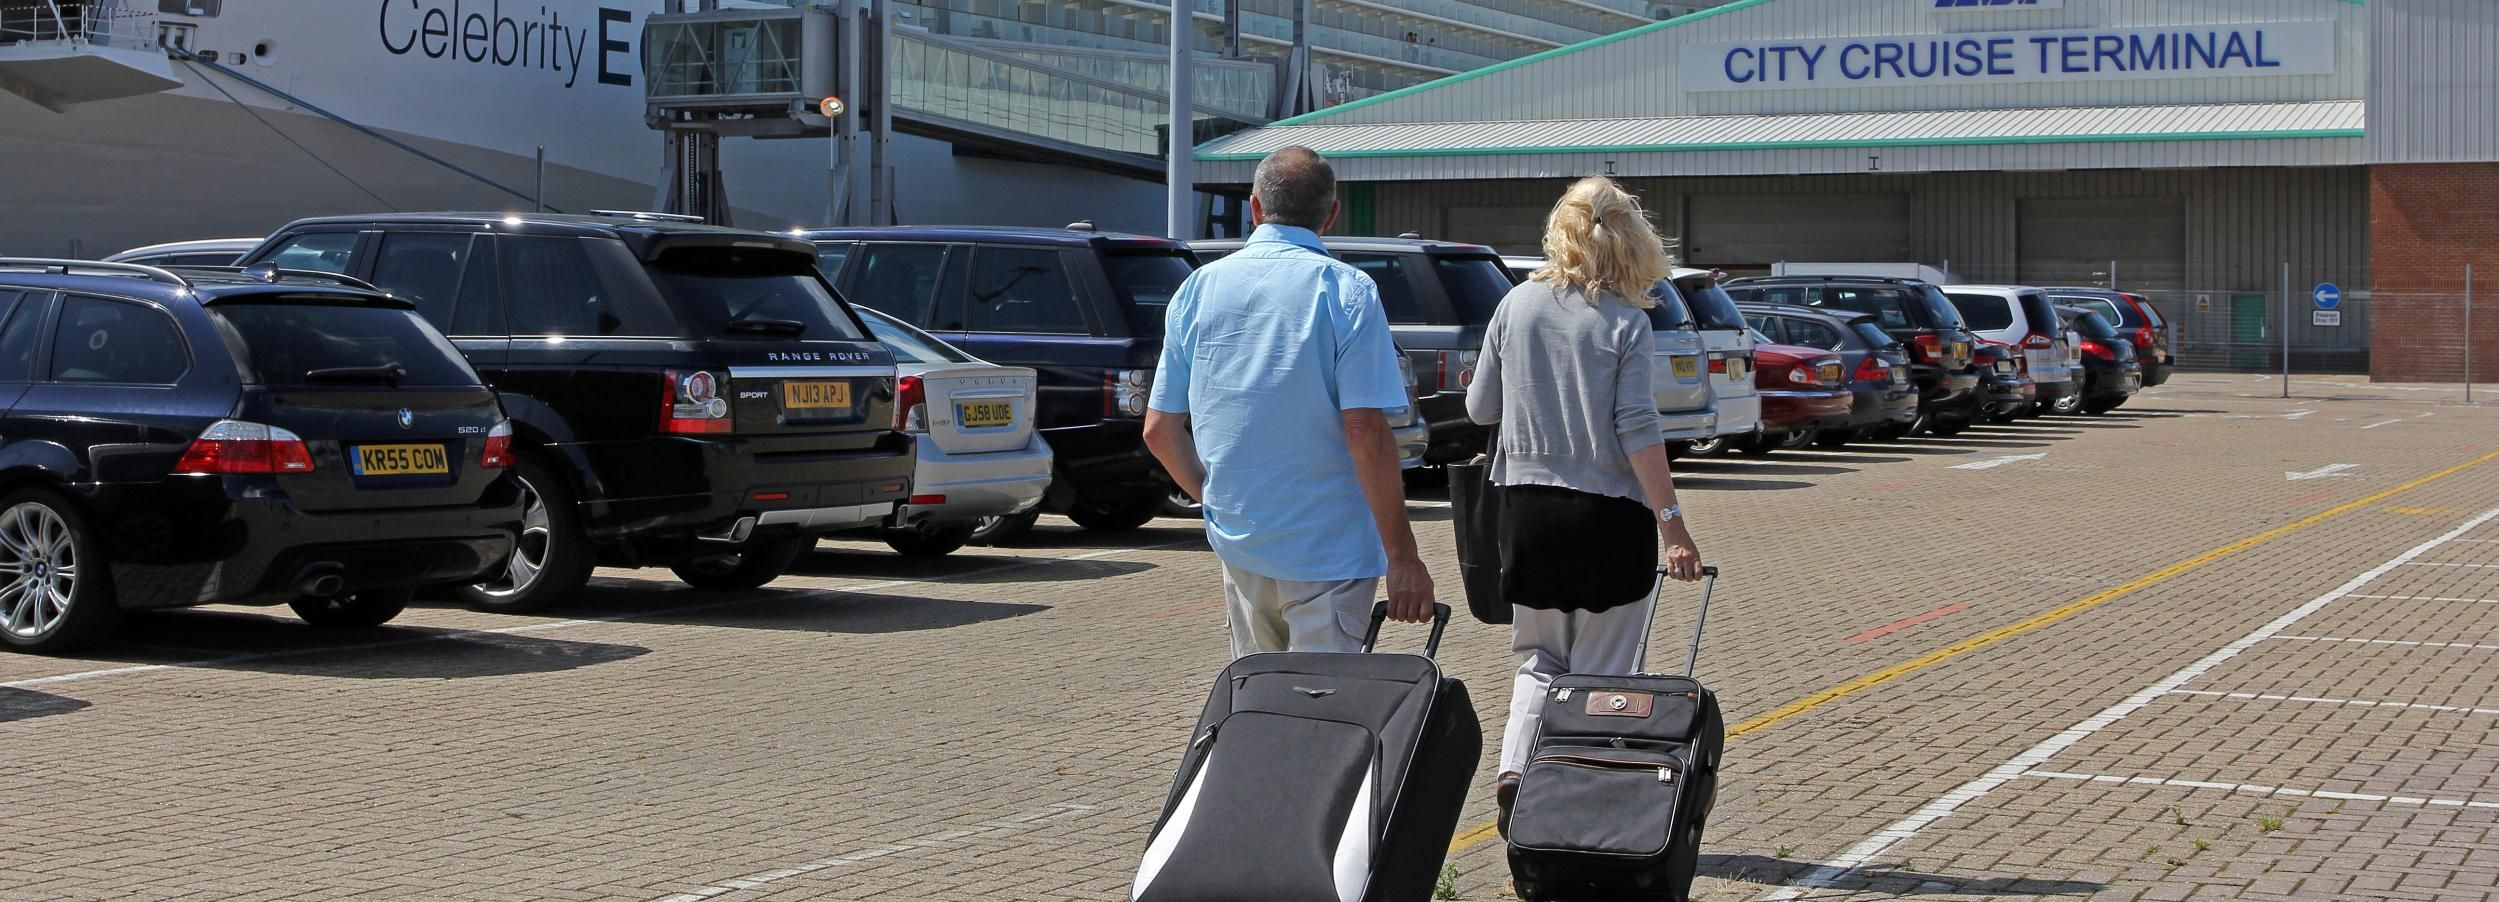 London to Southern England Cruise Terminals Transfers